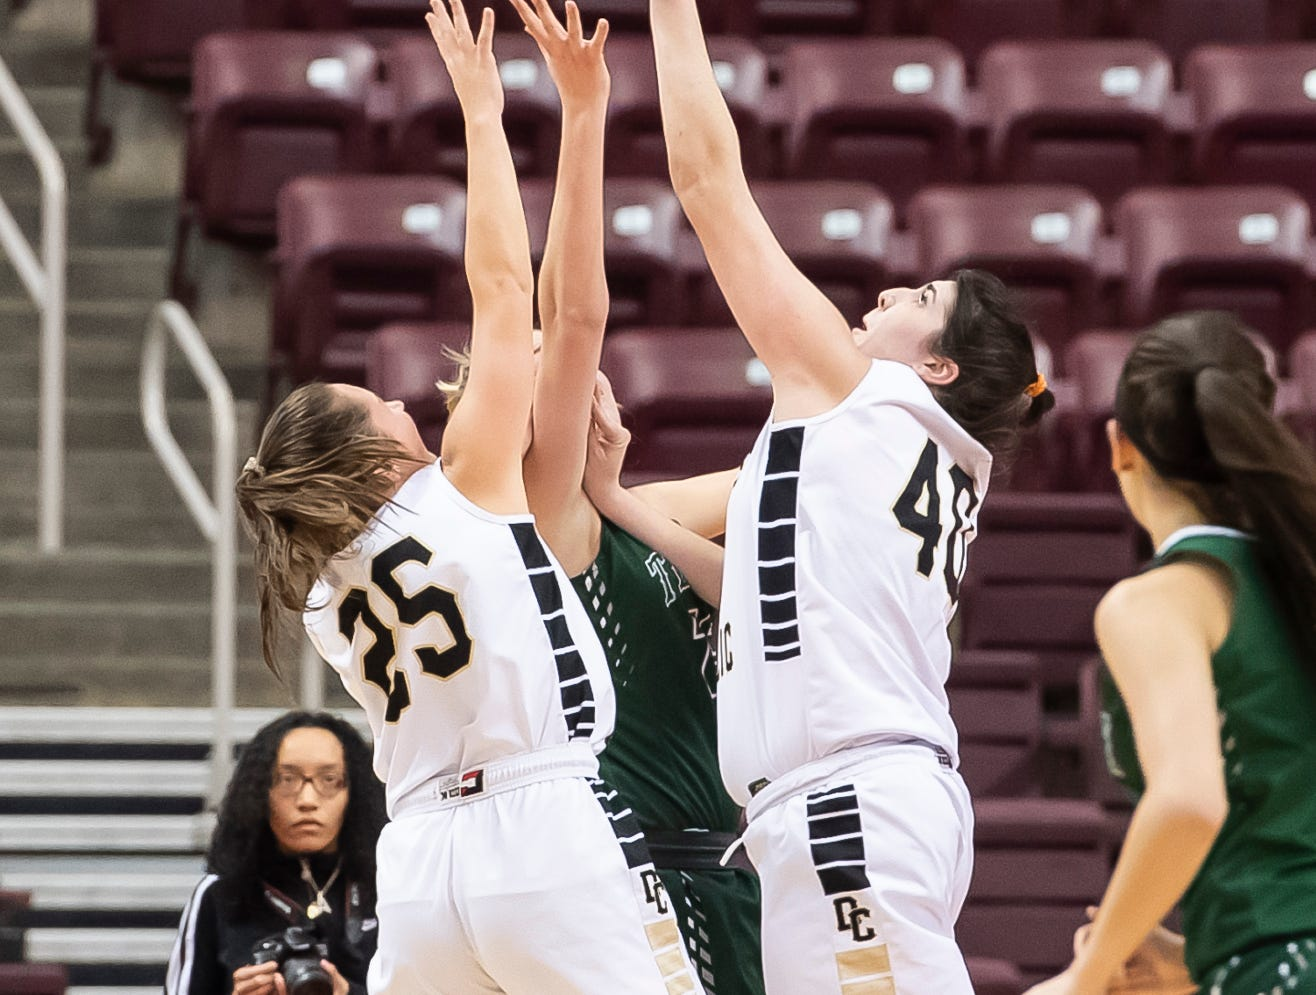 Delone Catholic's Bradi Zumbrum gets her fingers on a rebound during the District 3 3A girls championship game against Trinity at the Giant Center in Hershey Wednesday, Feb. 27, 2019. The Squirettes fell 44-33.